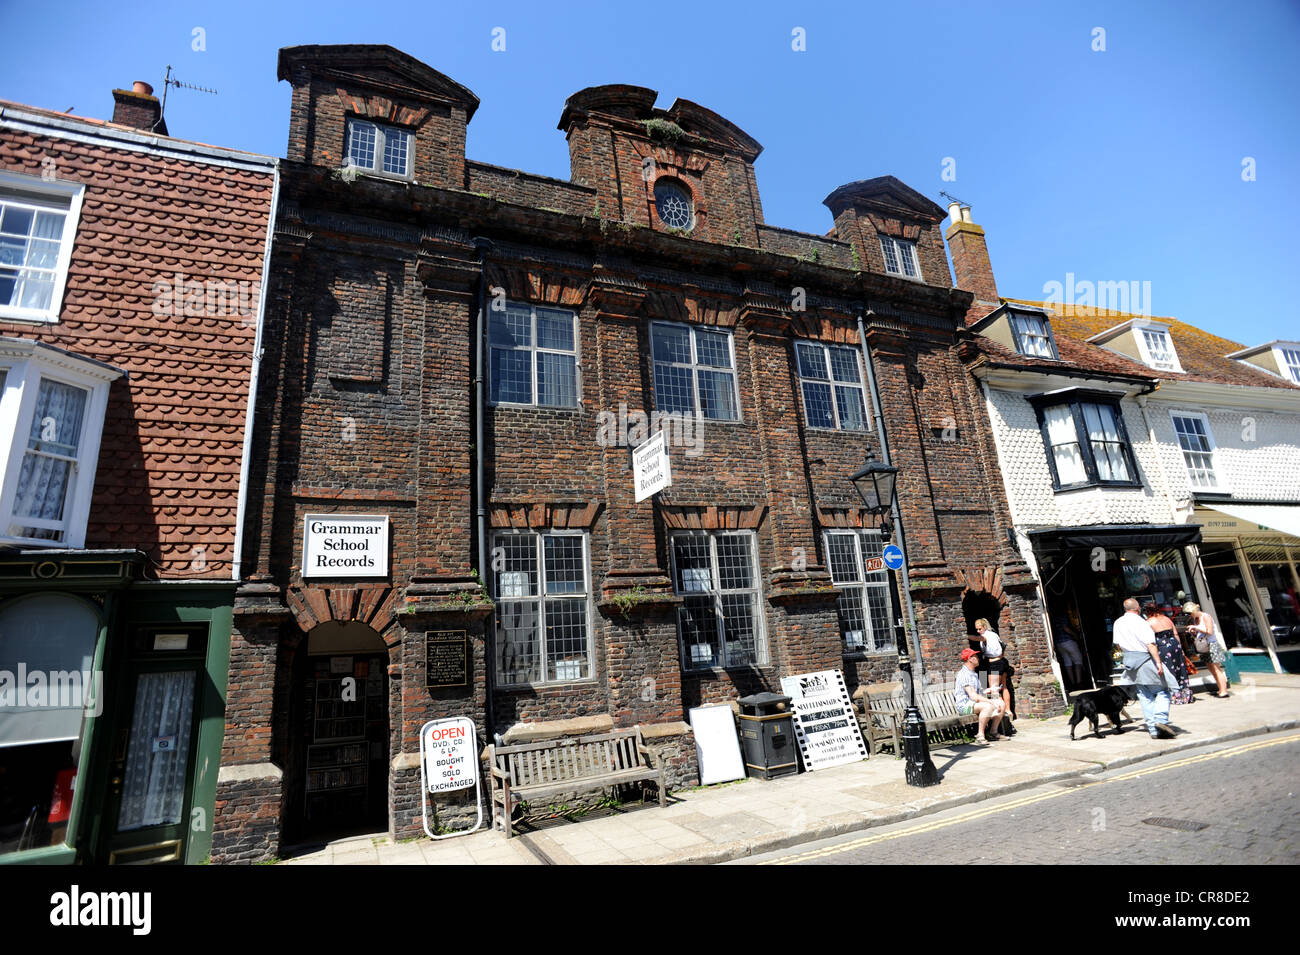 The Old Grammar School in Rye High Street now a record shop - Stock Image